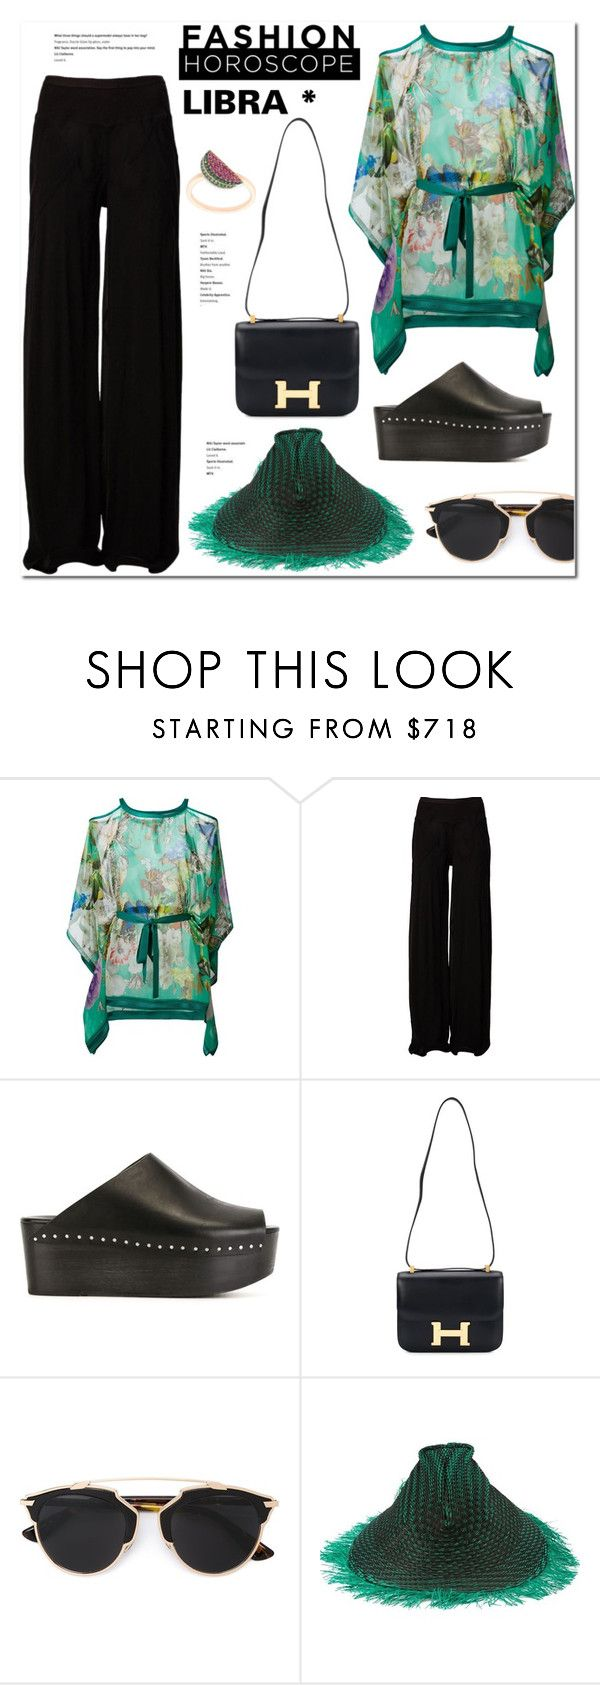 """Libra"" by stellaasteria ❤ liked on Polyvore featuring Roberto Cavalli, Rick Owens, Hermès, Christian Dior, Issey Miyake and Khai Khai"